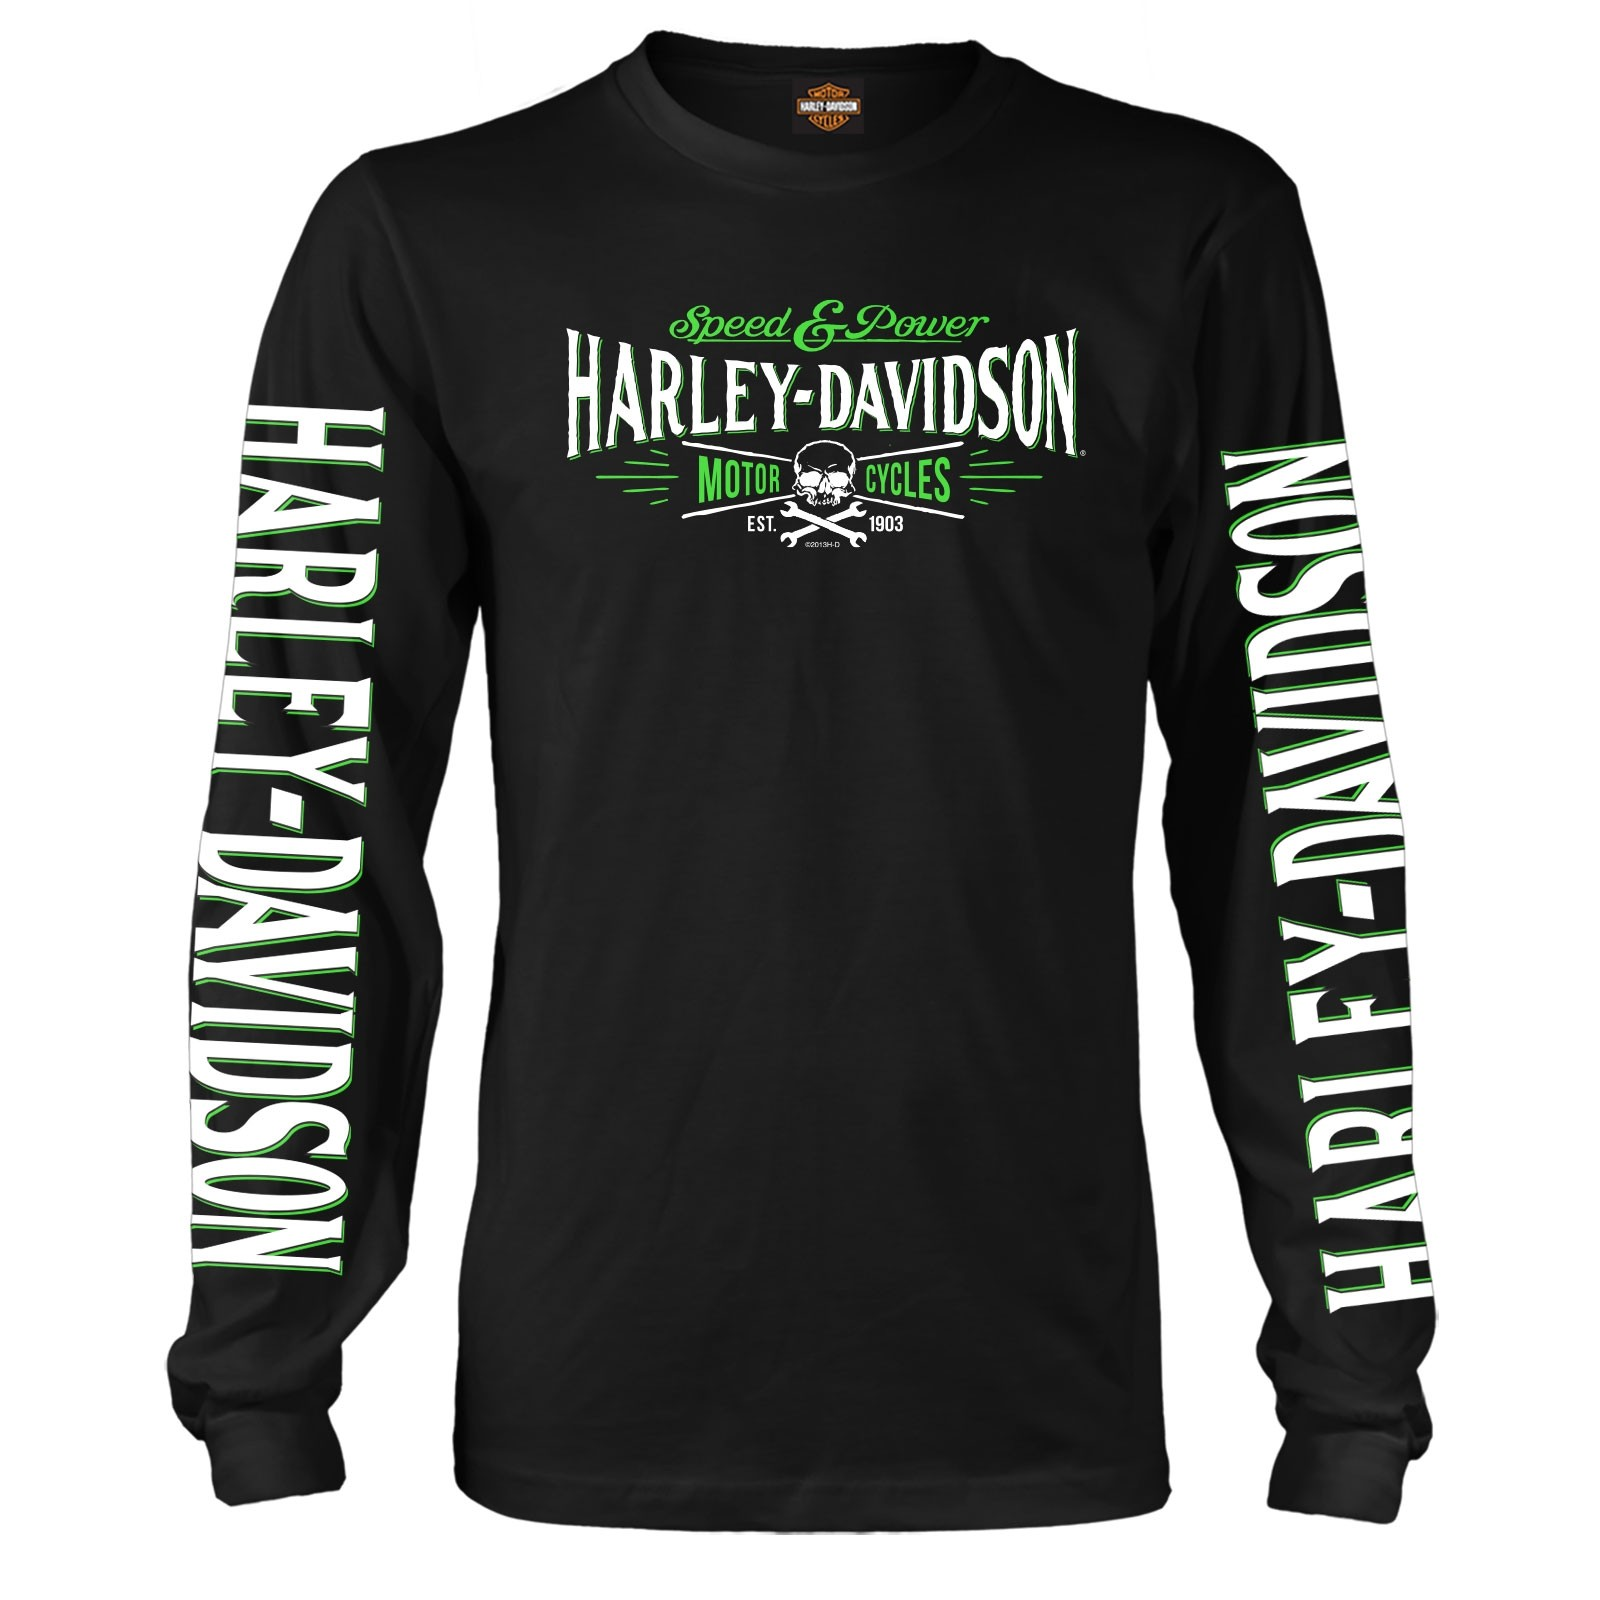 Harley-Davidson Military Long-Sleeve Crew Neck Graphic T-Shirt - Ramstein  AB  44e2e6cfe3a